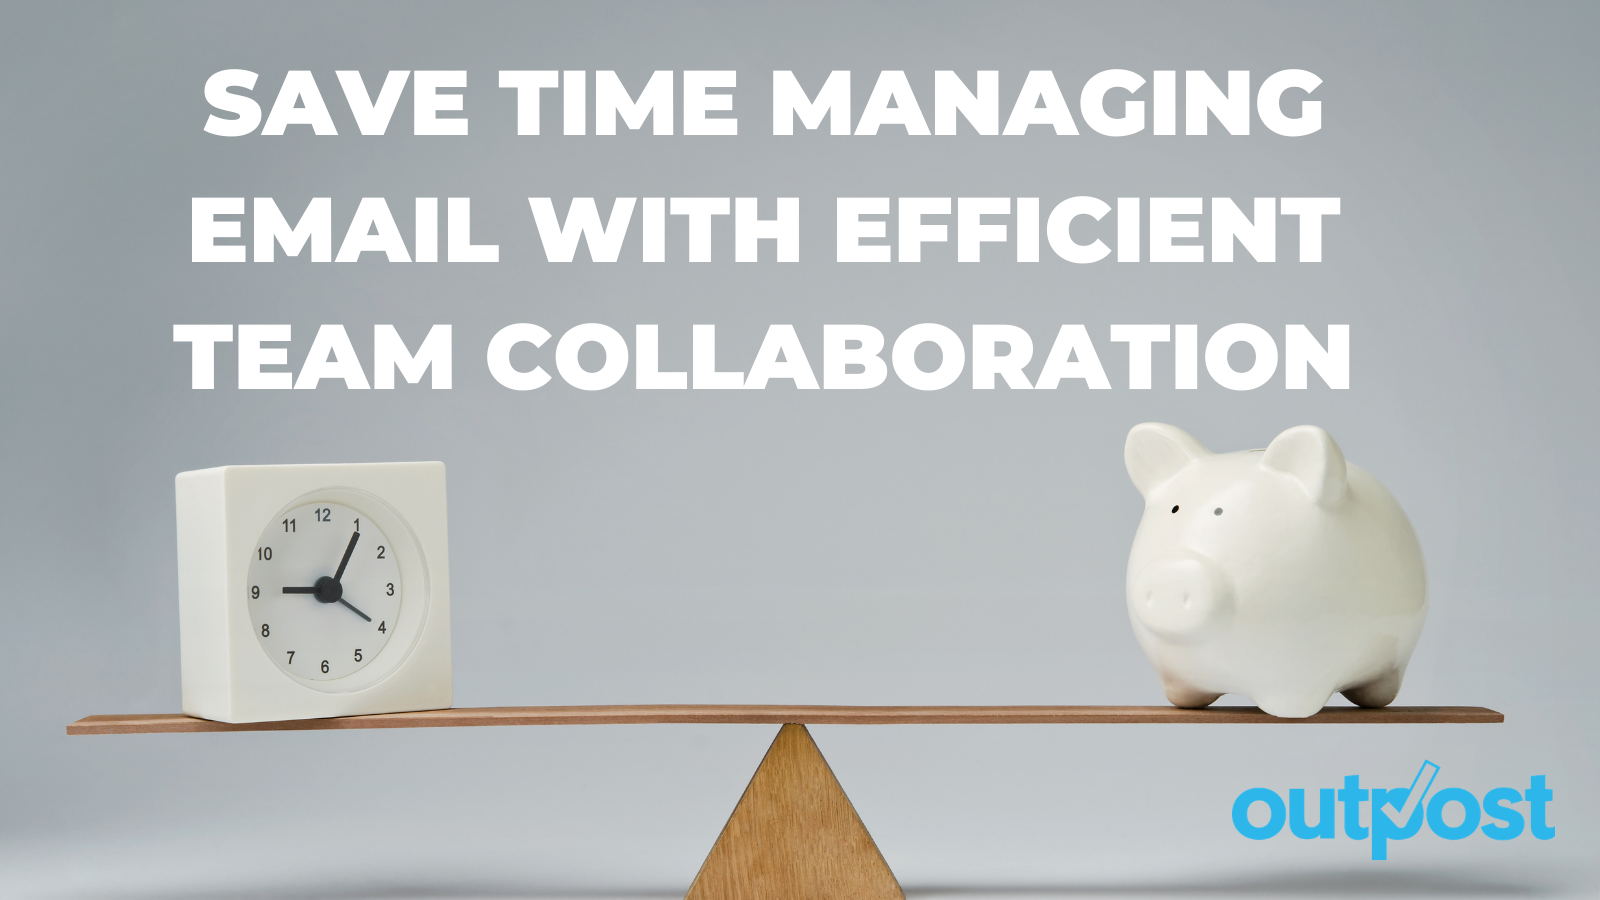 Save time managing email with efficient team collaboration (and the right tool!)